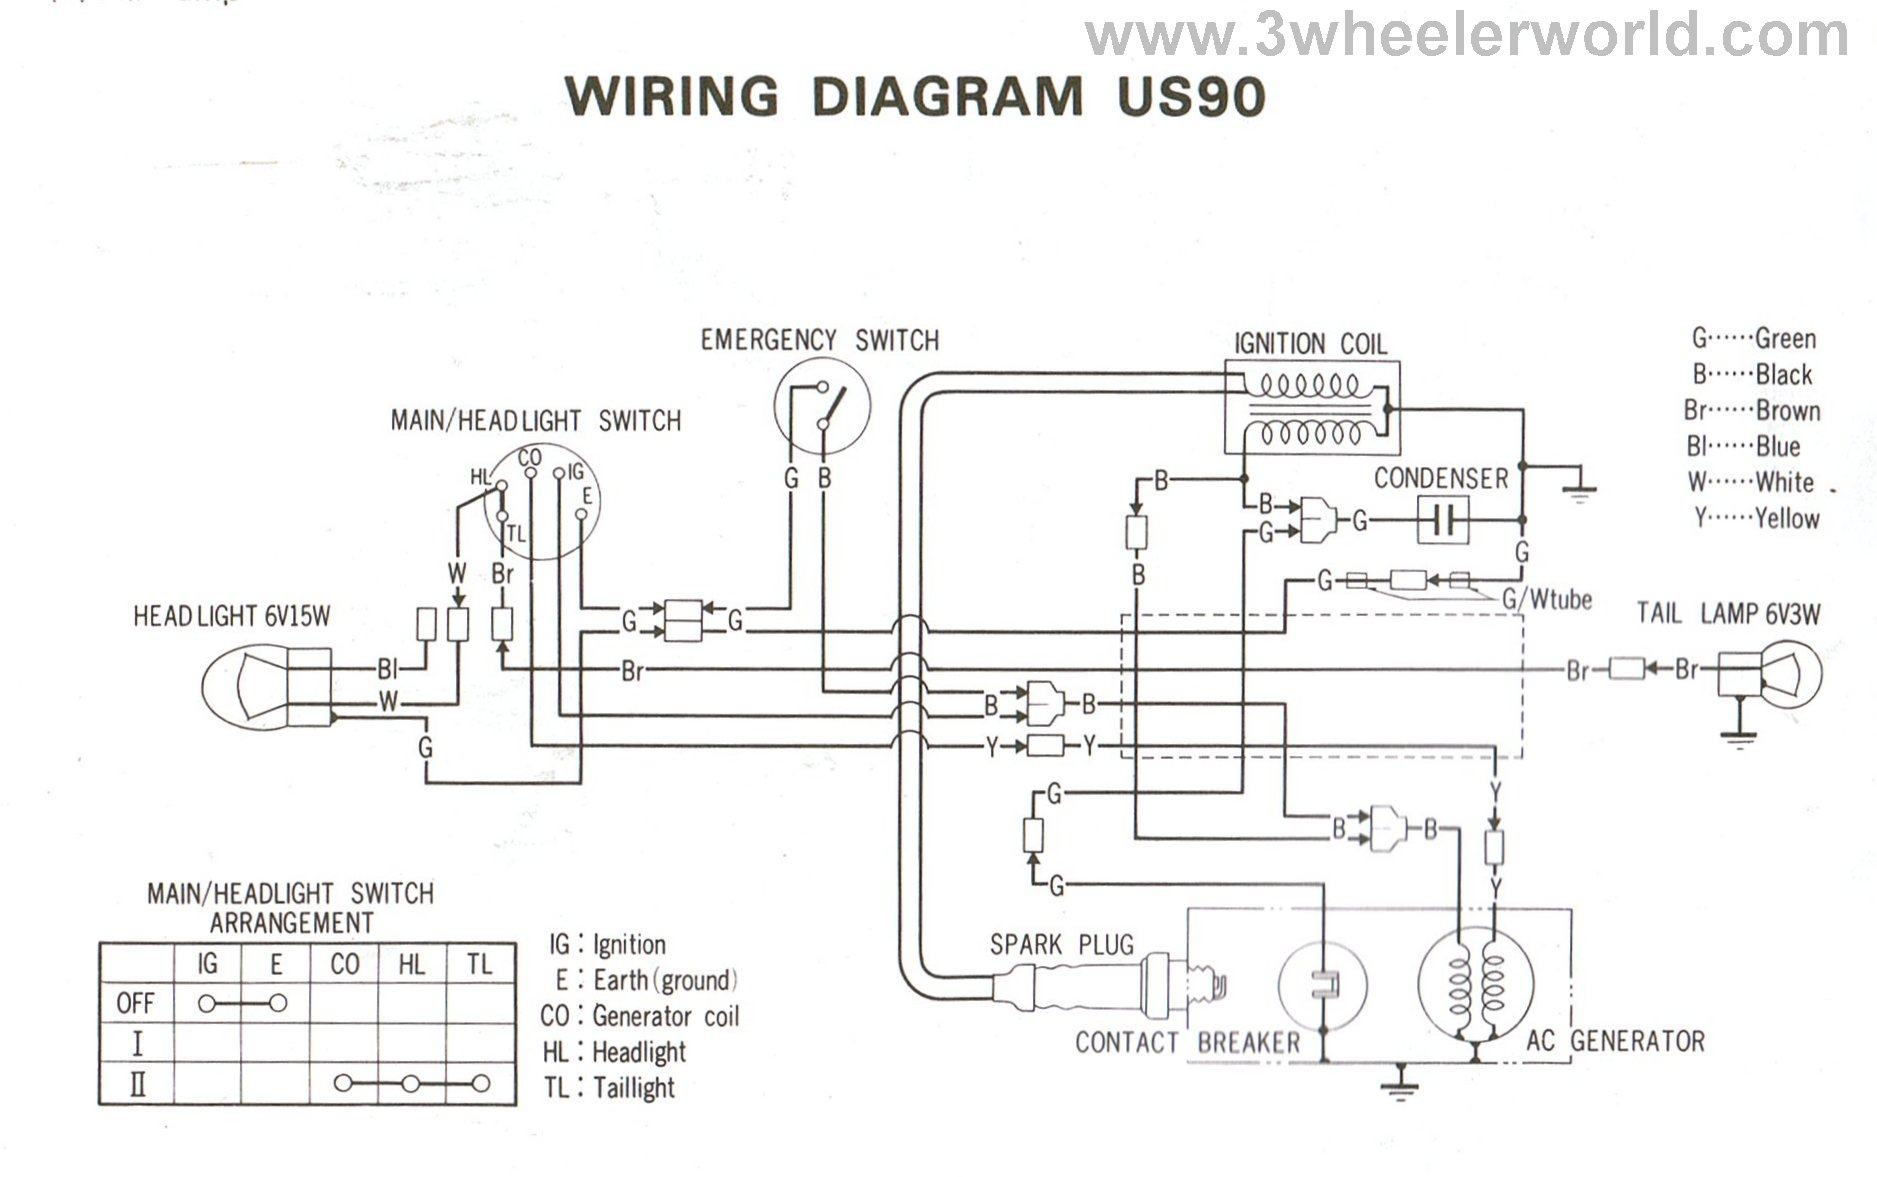 US90HM 3 wheeler world tech help honda wiring diagrams polaris 90 wiring diagram at soozxer.org